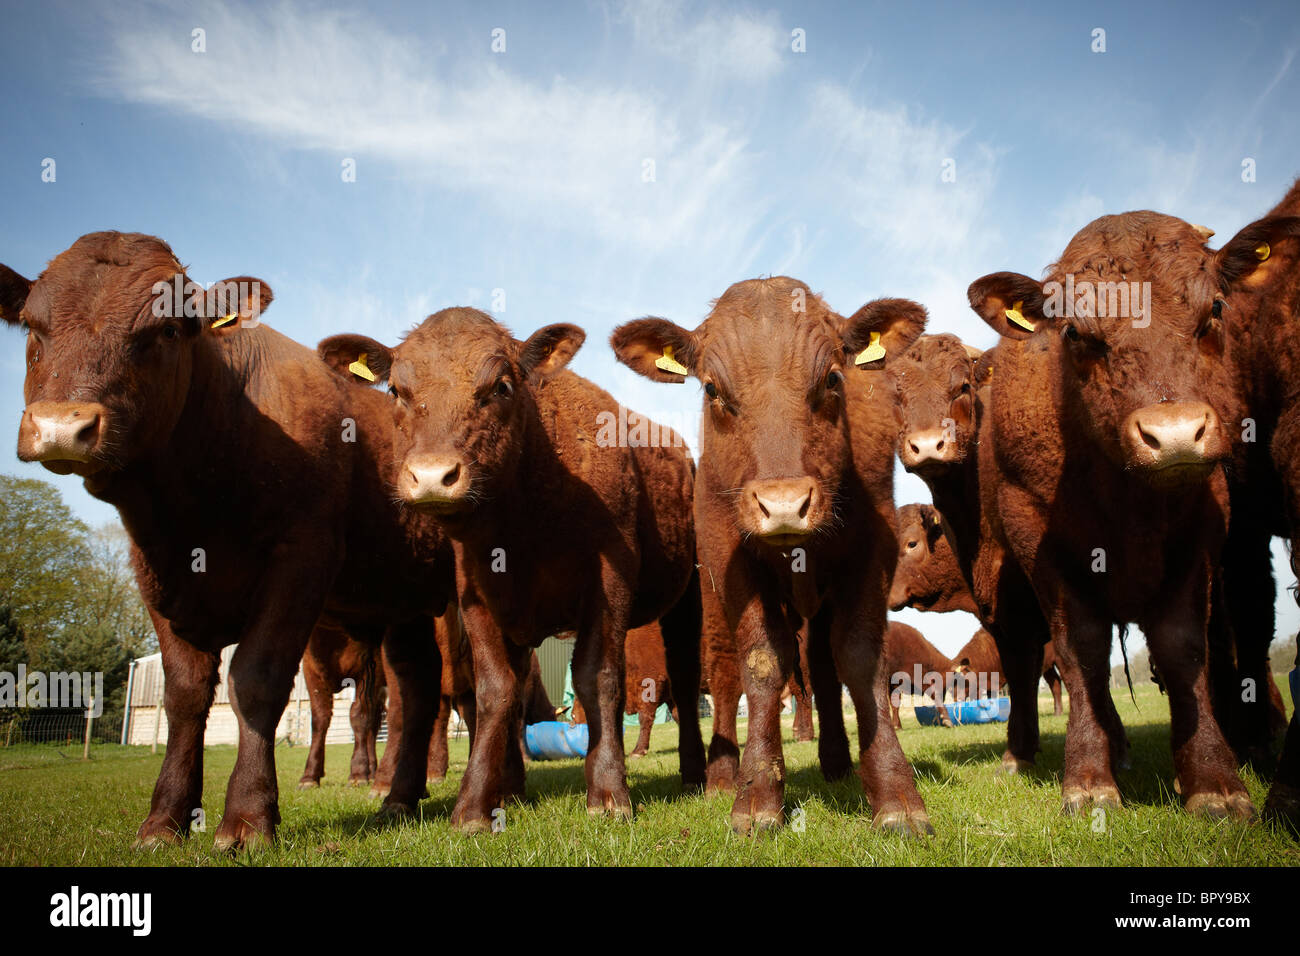 calves young cattle - Stock Image